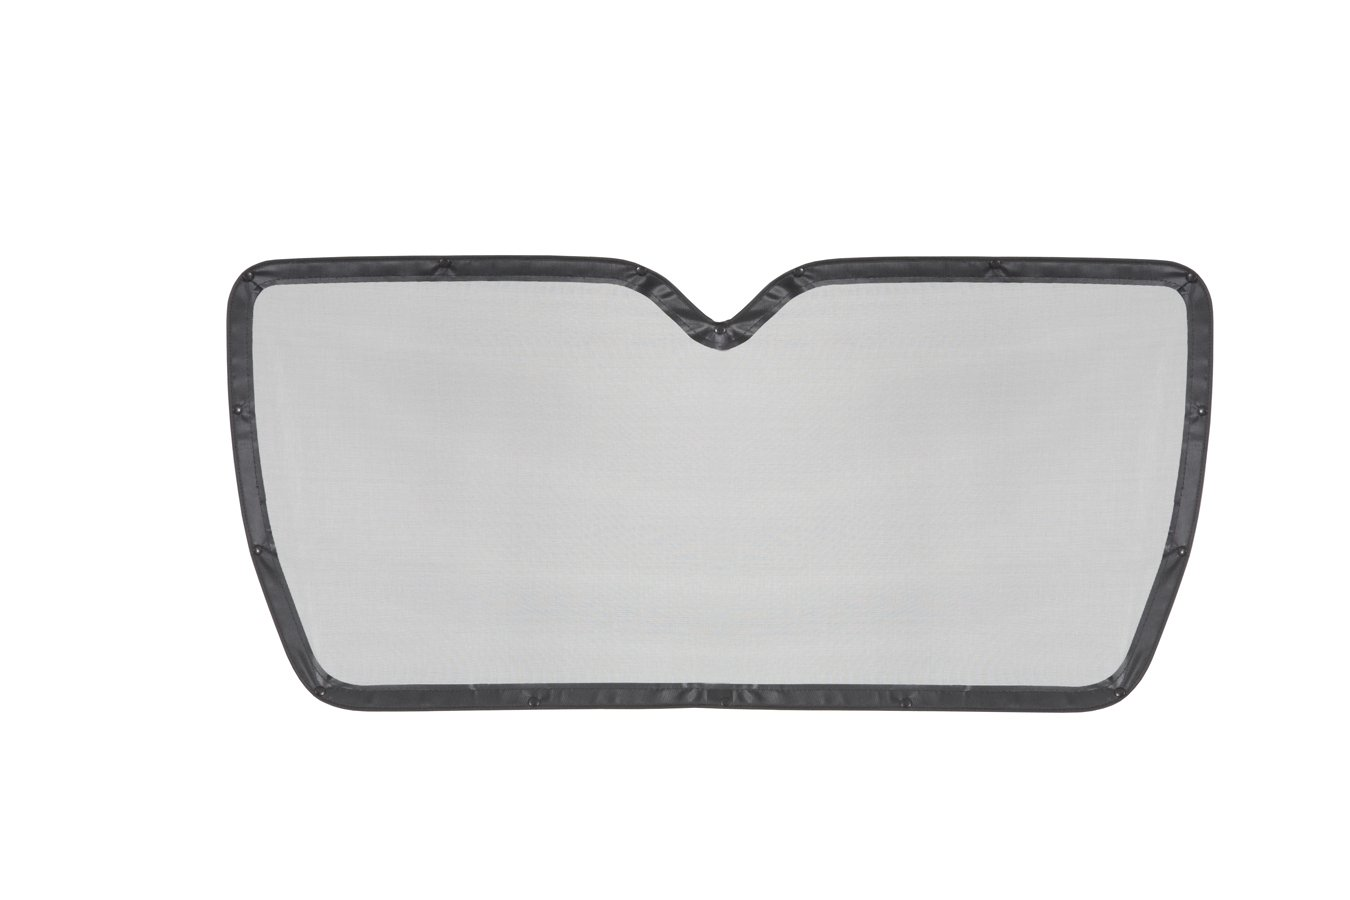 Belmor BS-2200-1 Black Bug Screen Truck Grille Cover for 2006-2017 International 7000 Series (Non-Stationary Grille)